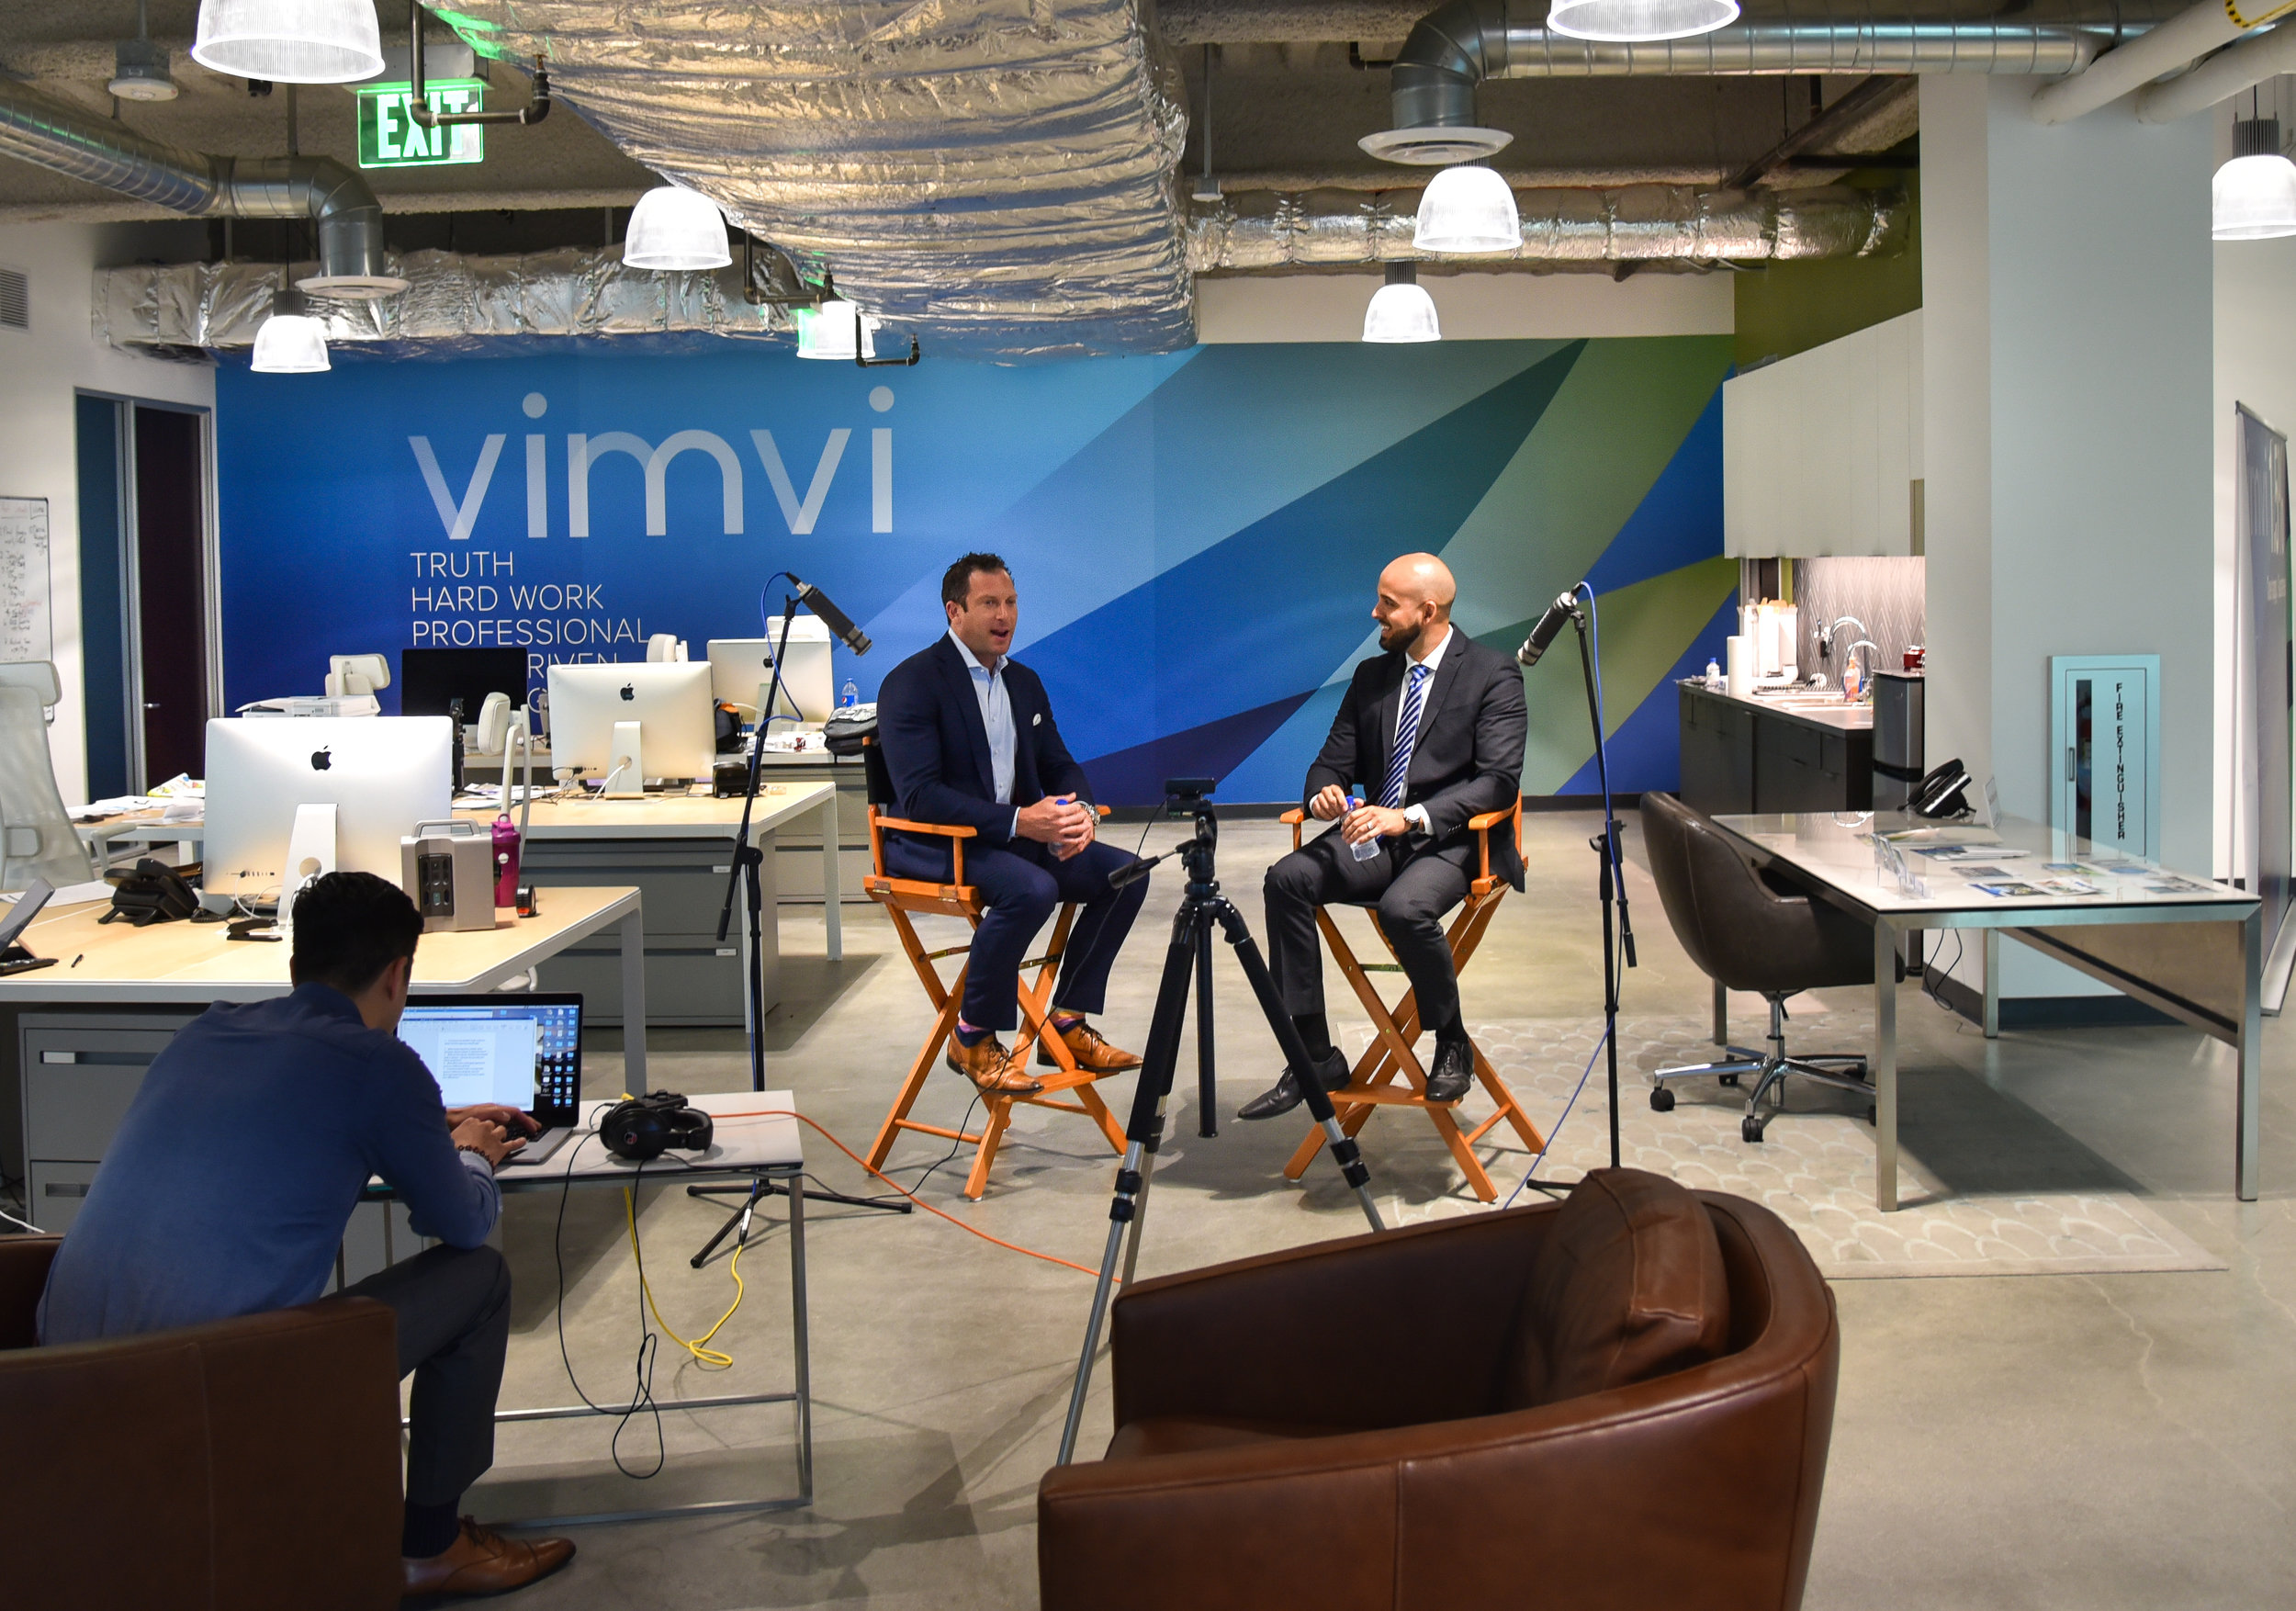 Tune in - As a technologically-forward real estate company, Vimvi produces informative podcasts. We hope to educate our viewers with financially-savvy, real estate and business-related podcasts. We interview local businesses and learn how they've made their success. Check out our podcasts below.